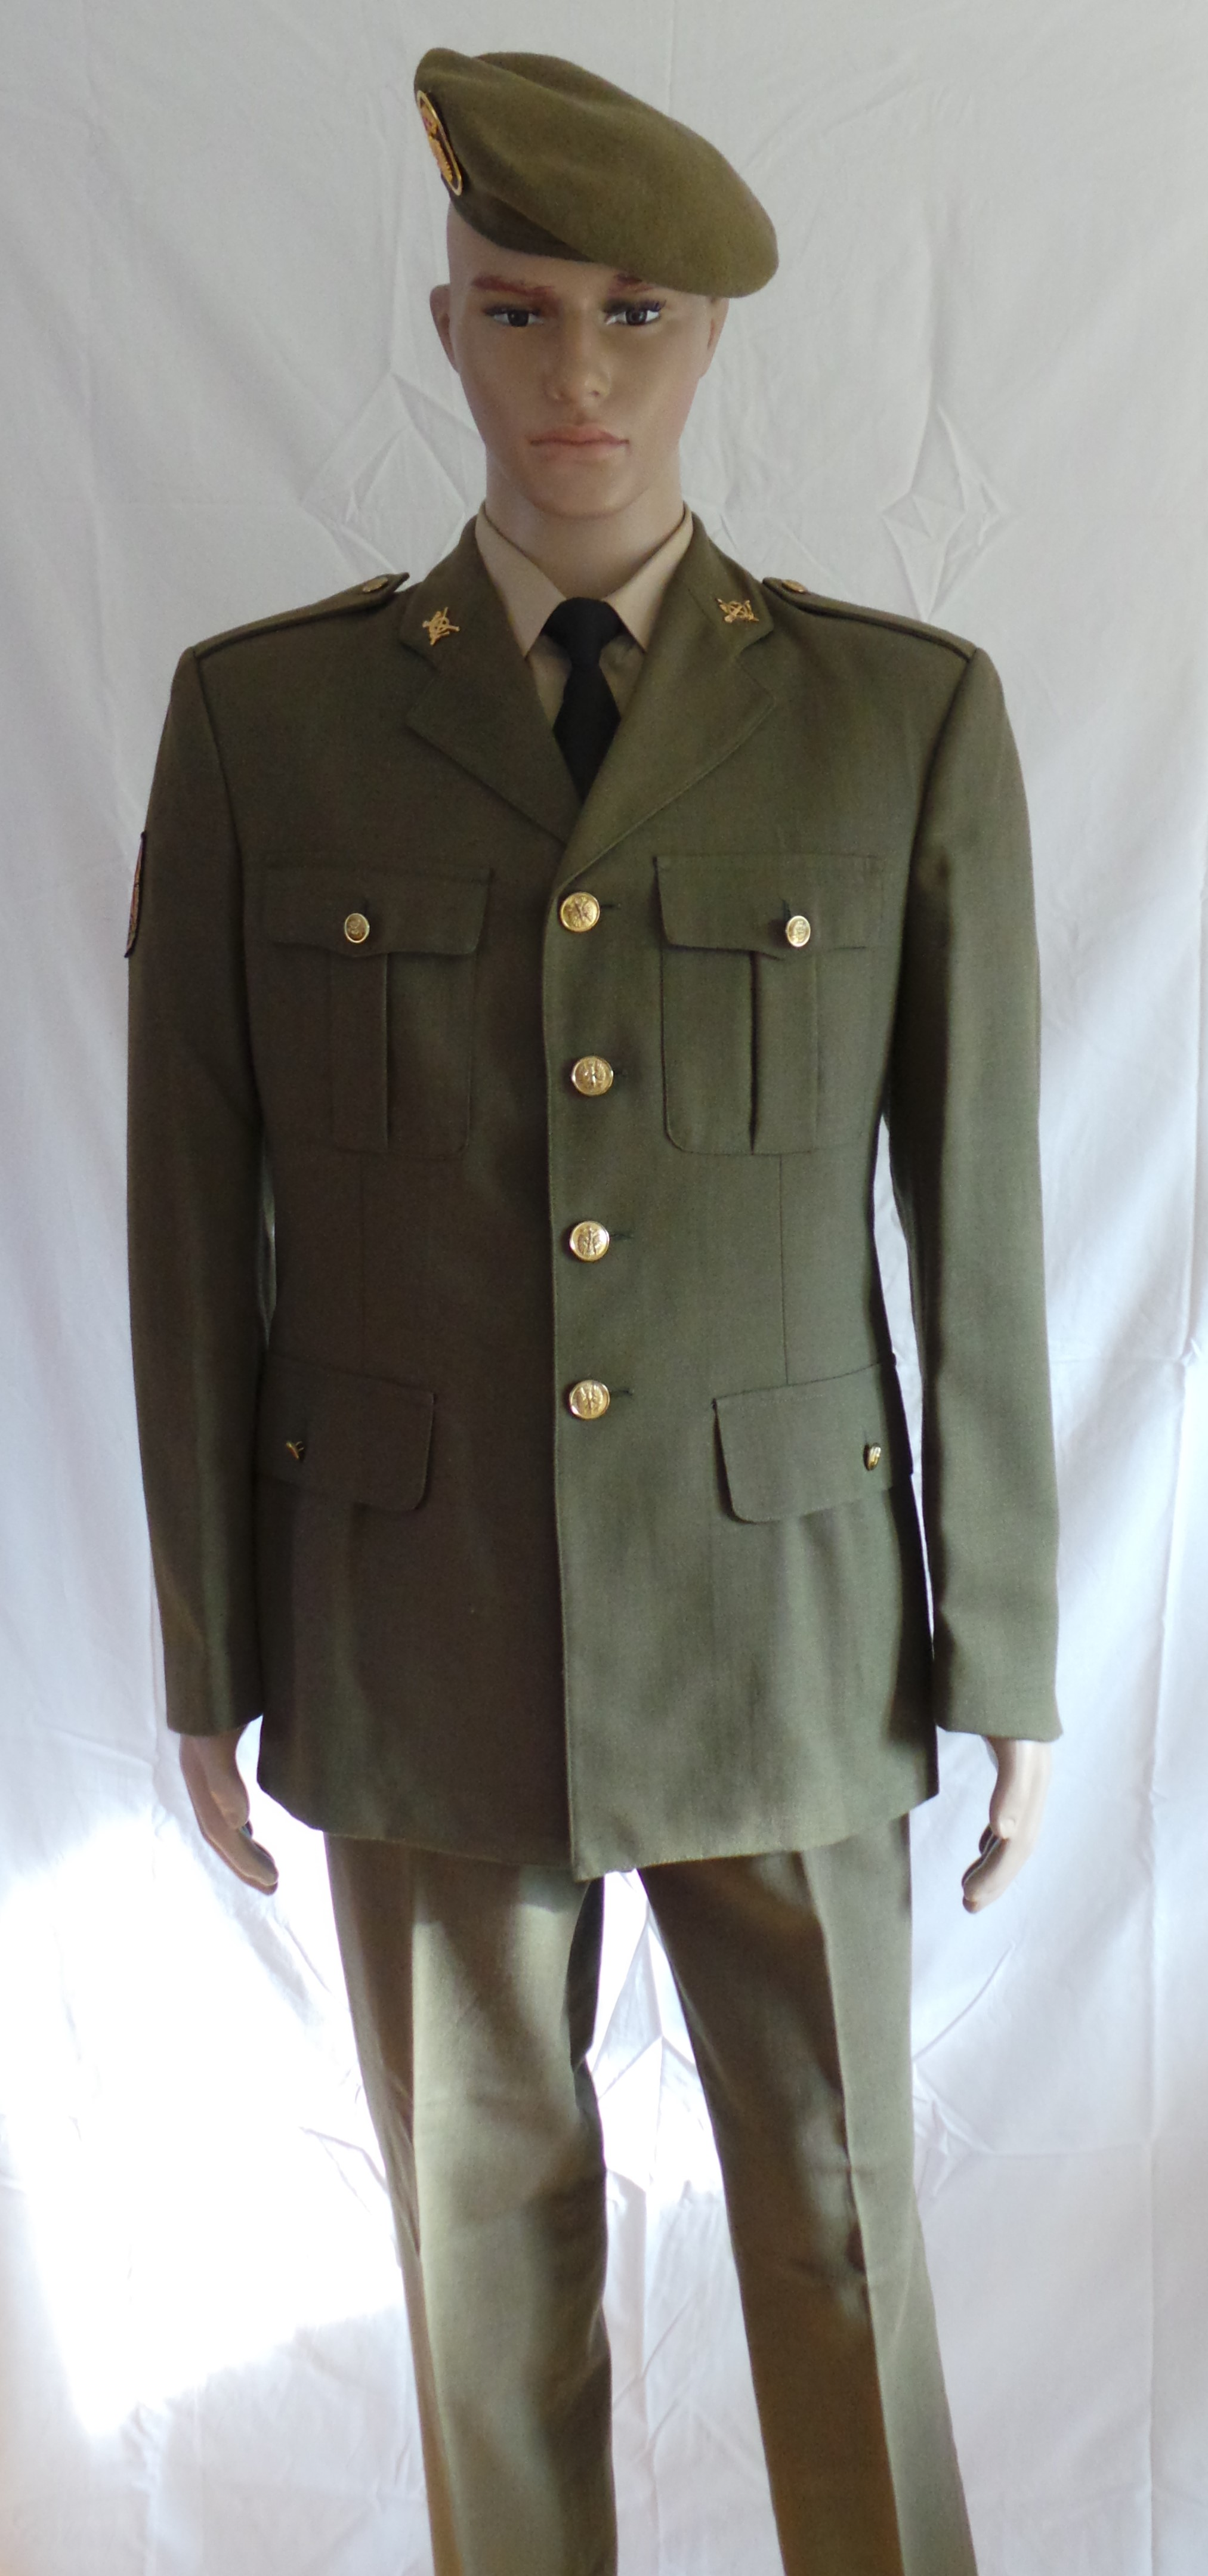 Spanish Army Infantry Other Ranks Service Dress (2)1